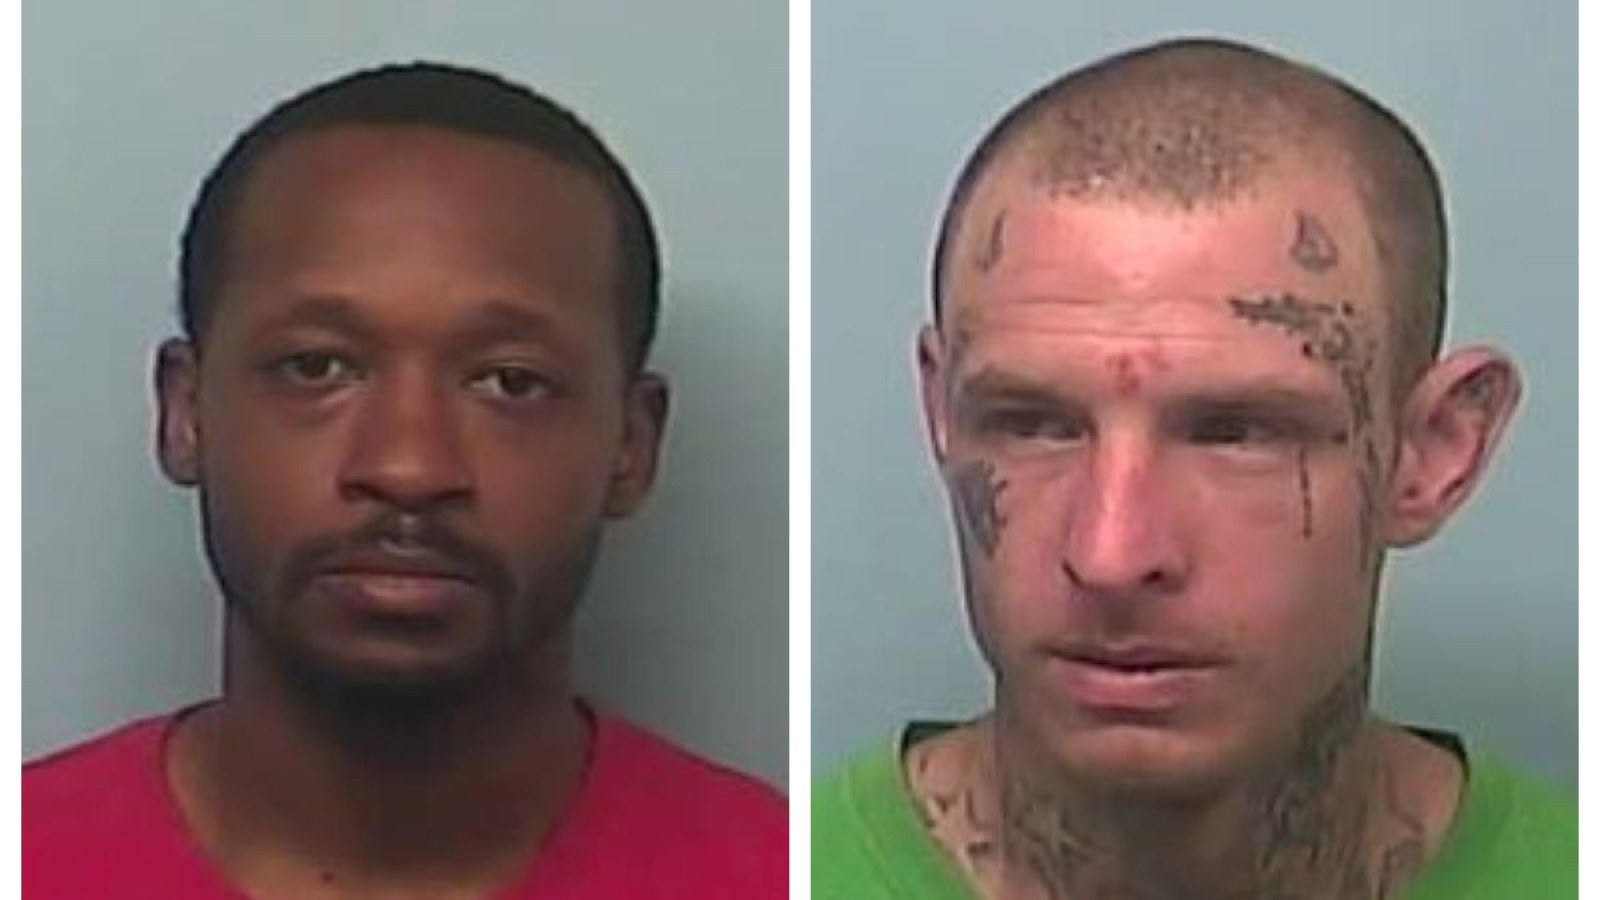 Troup County Manhunt: Georgia Police Search for Convicts Who Used